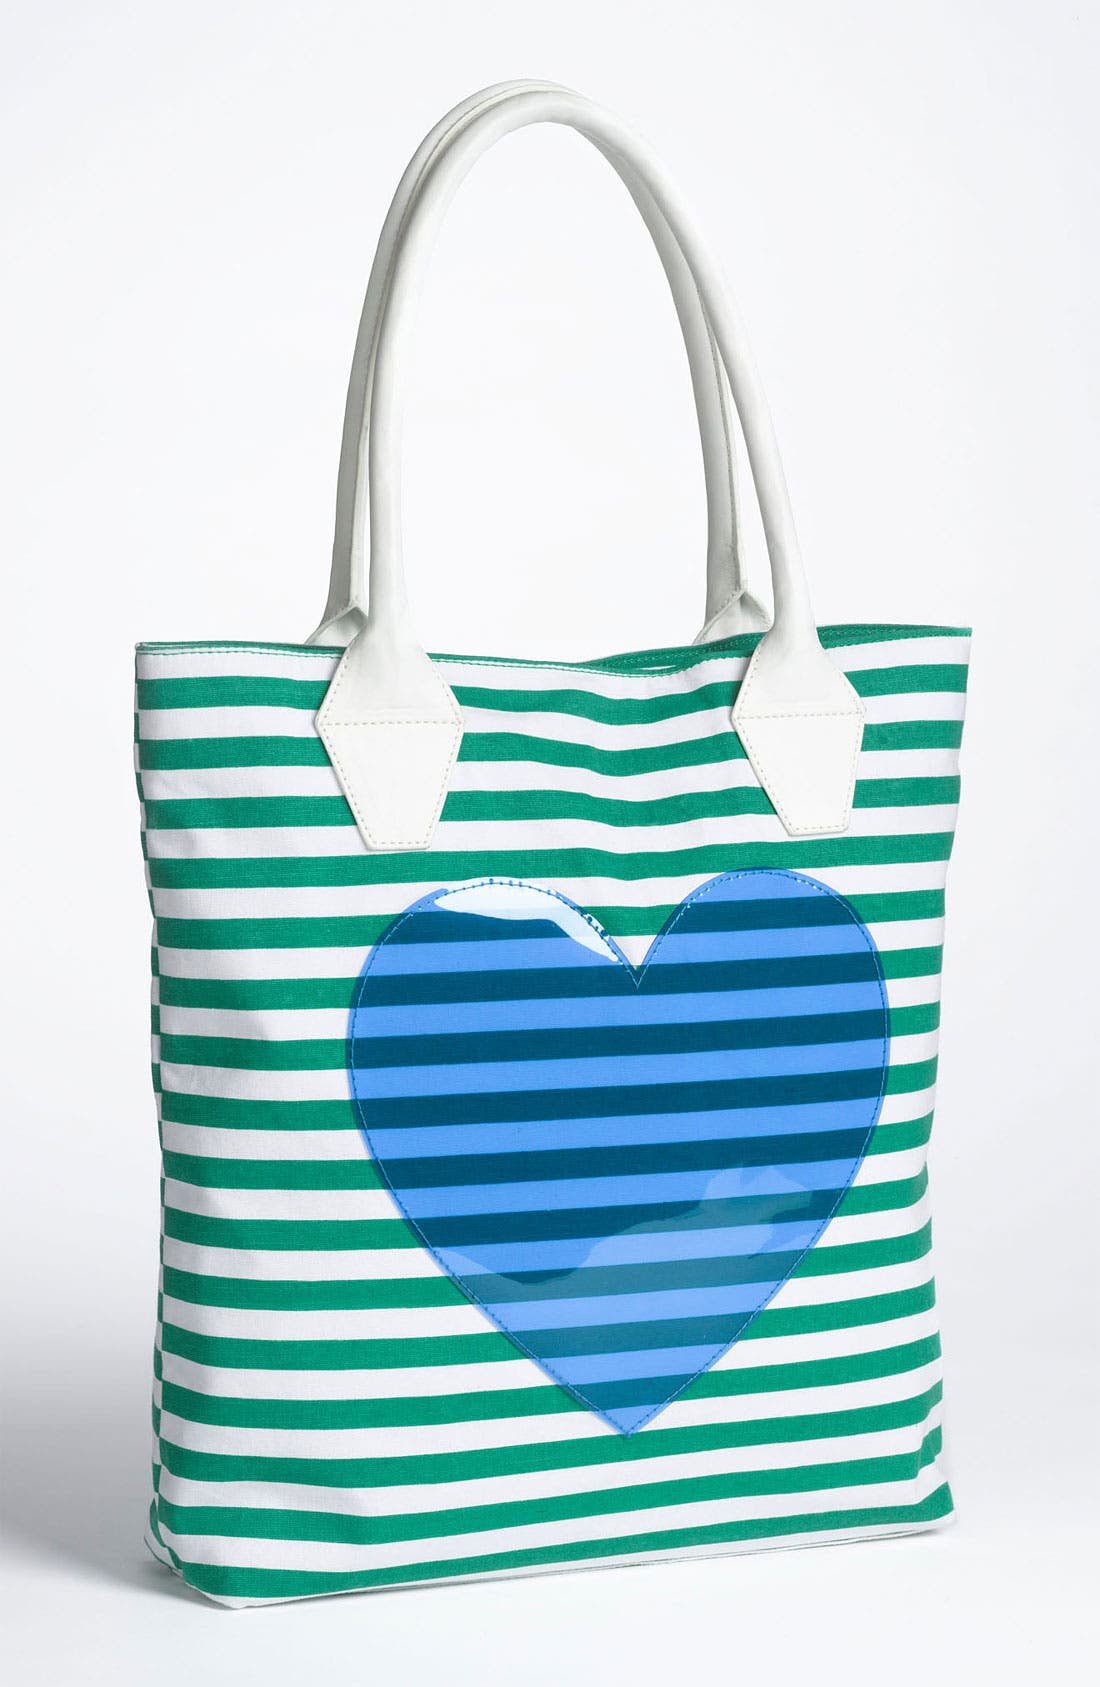 Alternate Image 1 Selected - Fantasia Accessories 'Heart' Tote (Girls)